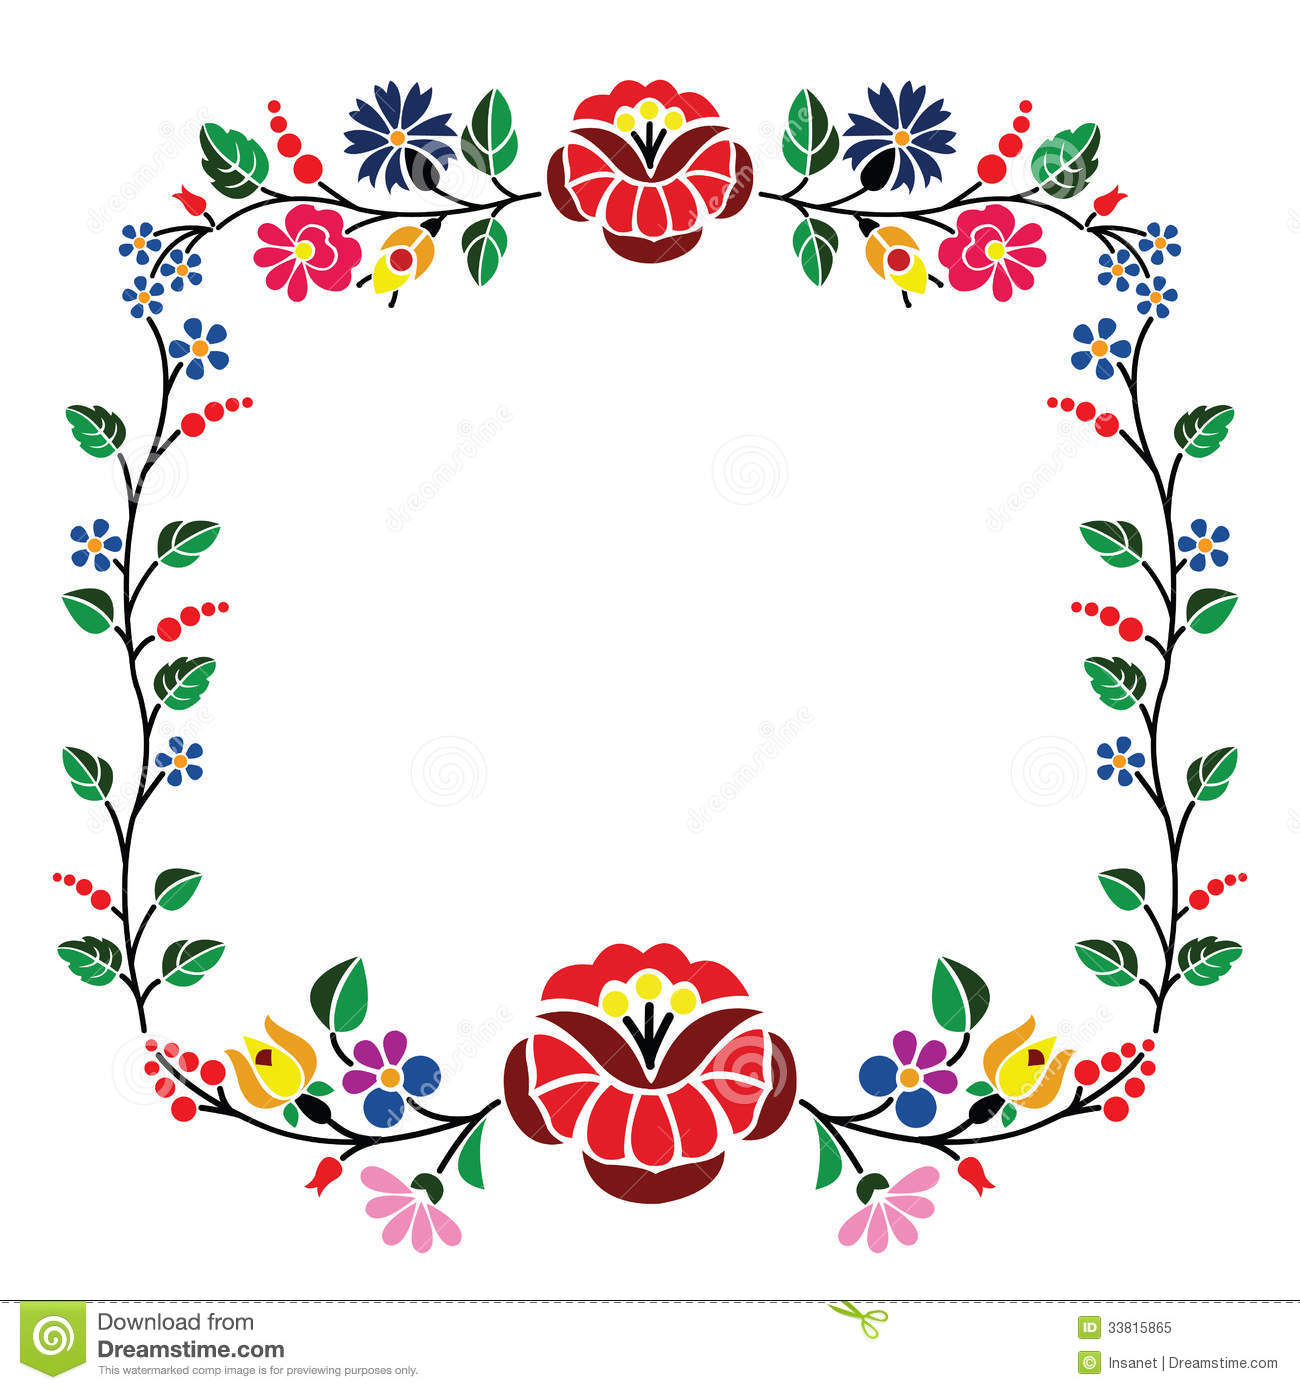 Kalocsai pattern stock vector. Image of flower, isolated